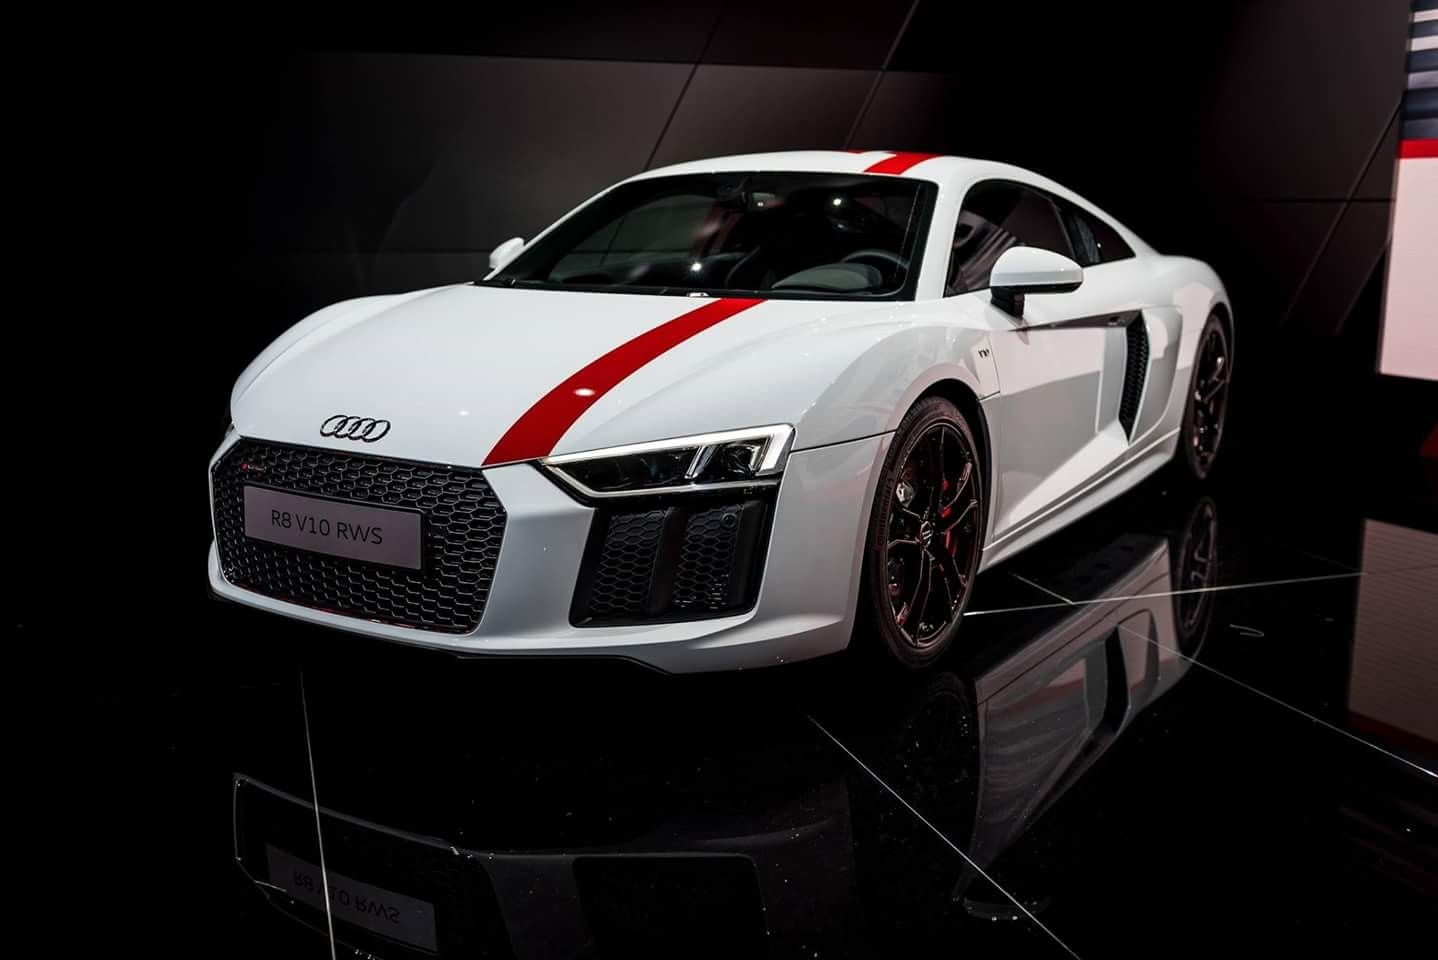 Pin By Jordan Snyder On The Best Audis Pinterest Audi Audi - Audi car jordan